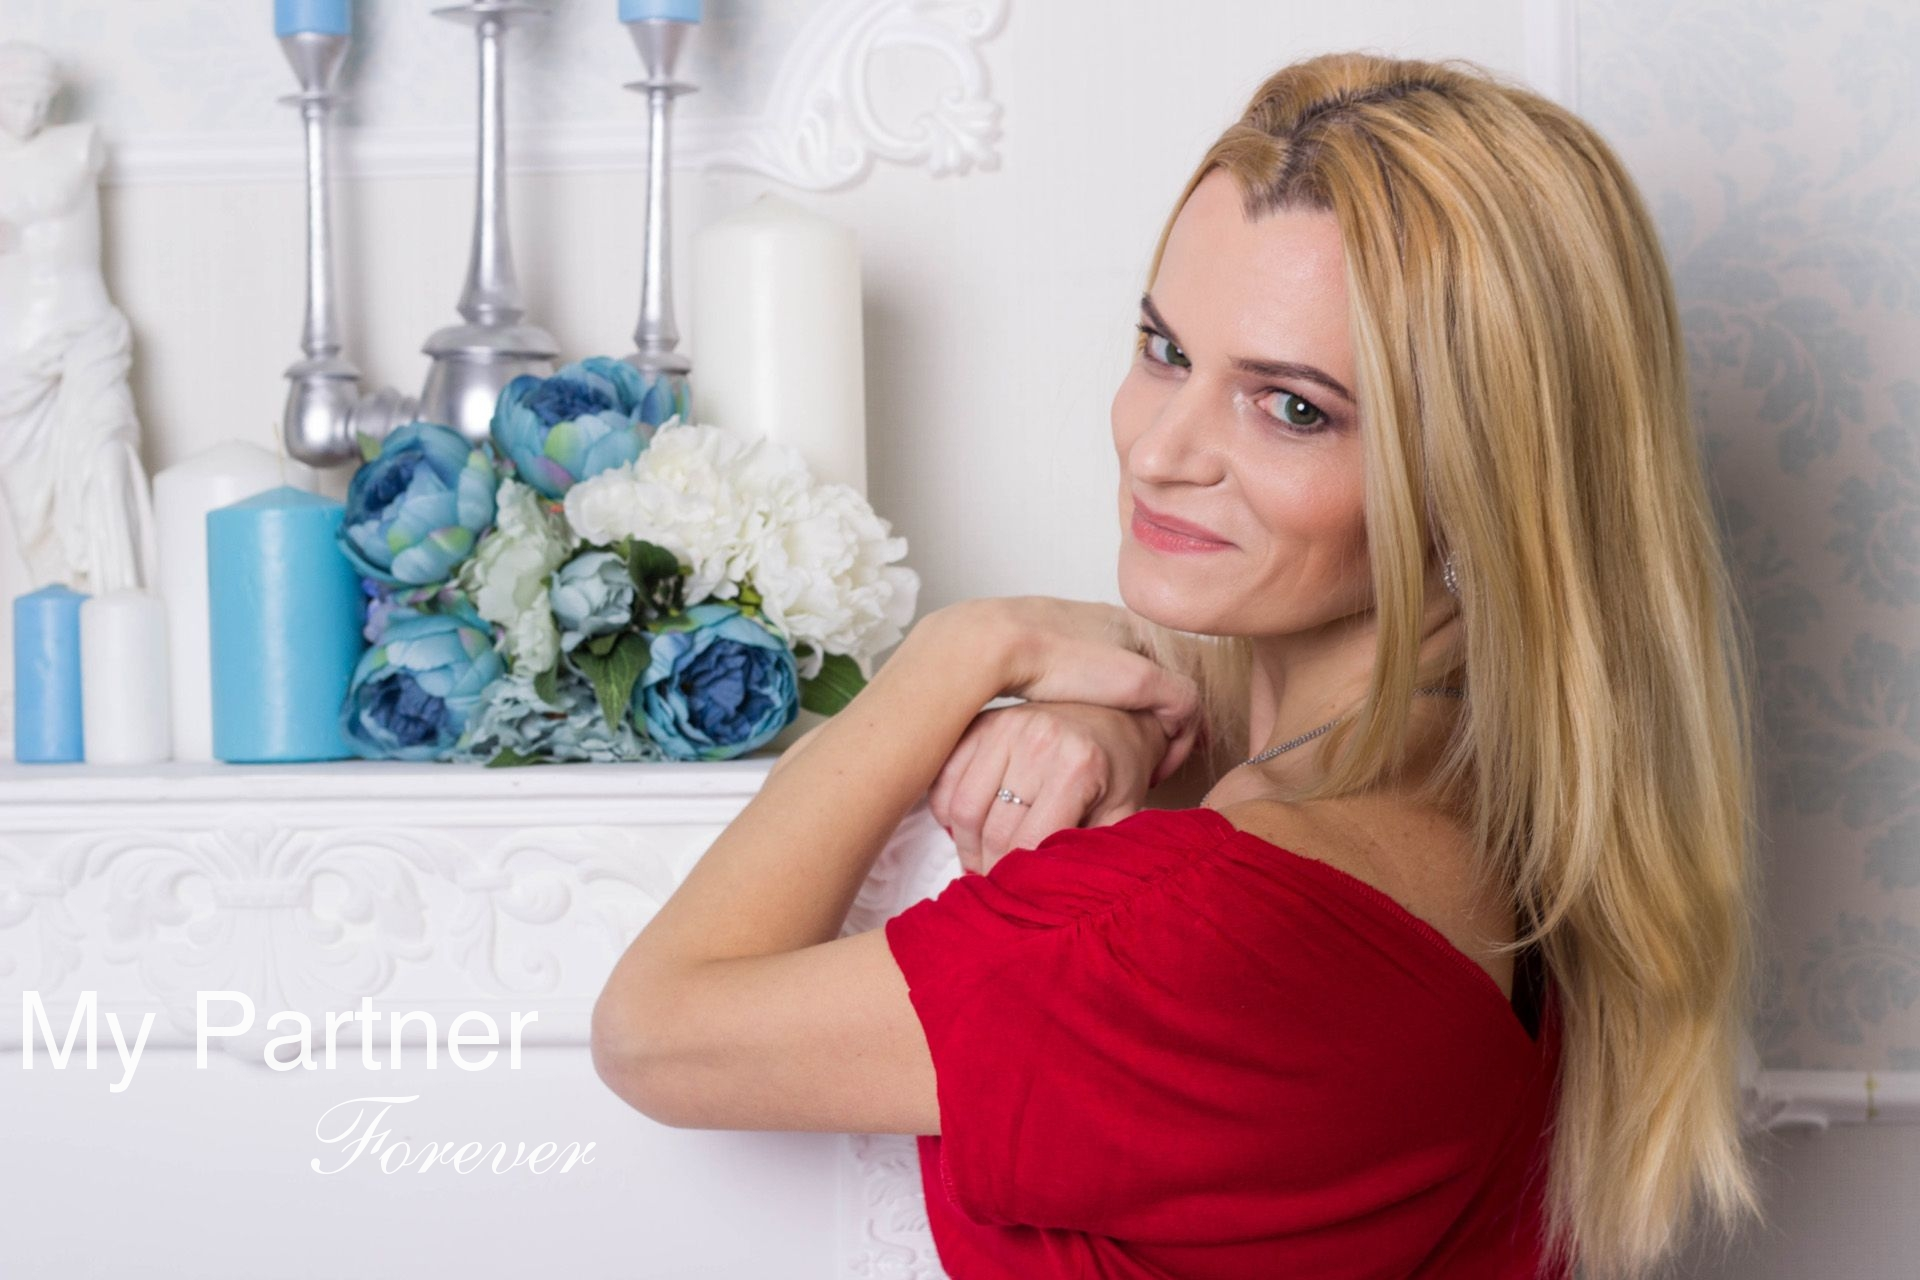 Beautiful Ukrainian Girl Marina from Kharkov, Ukraine